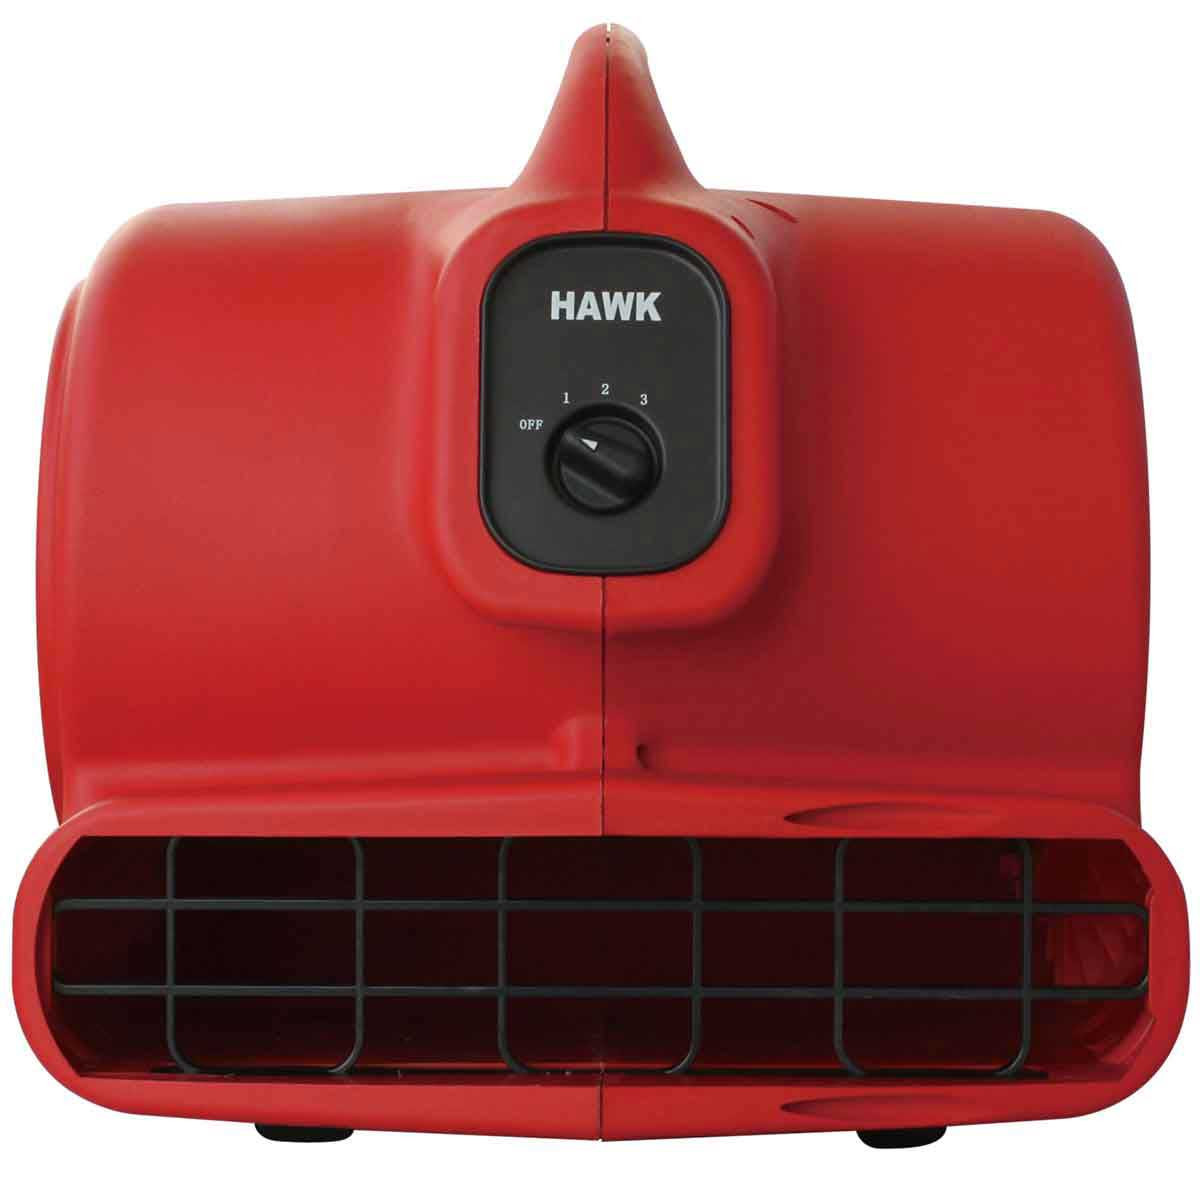 Hawk Air Mover daisy chain